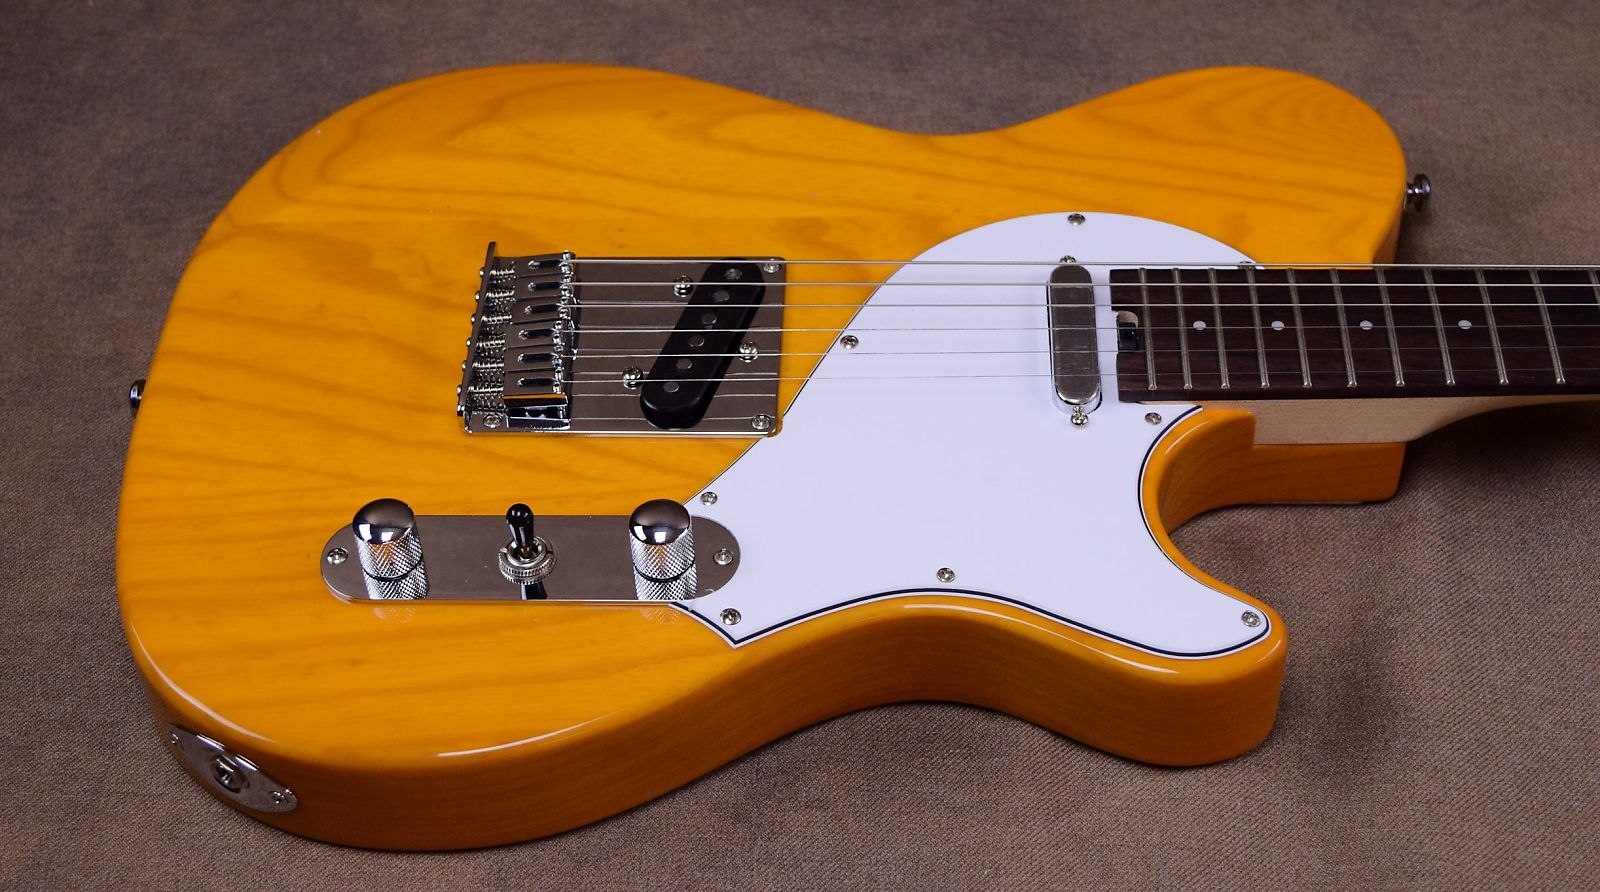 hight resolution of where can i get a short knob switch knob tele control plate like this one pic is of a cort classic tc